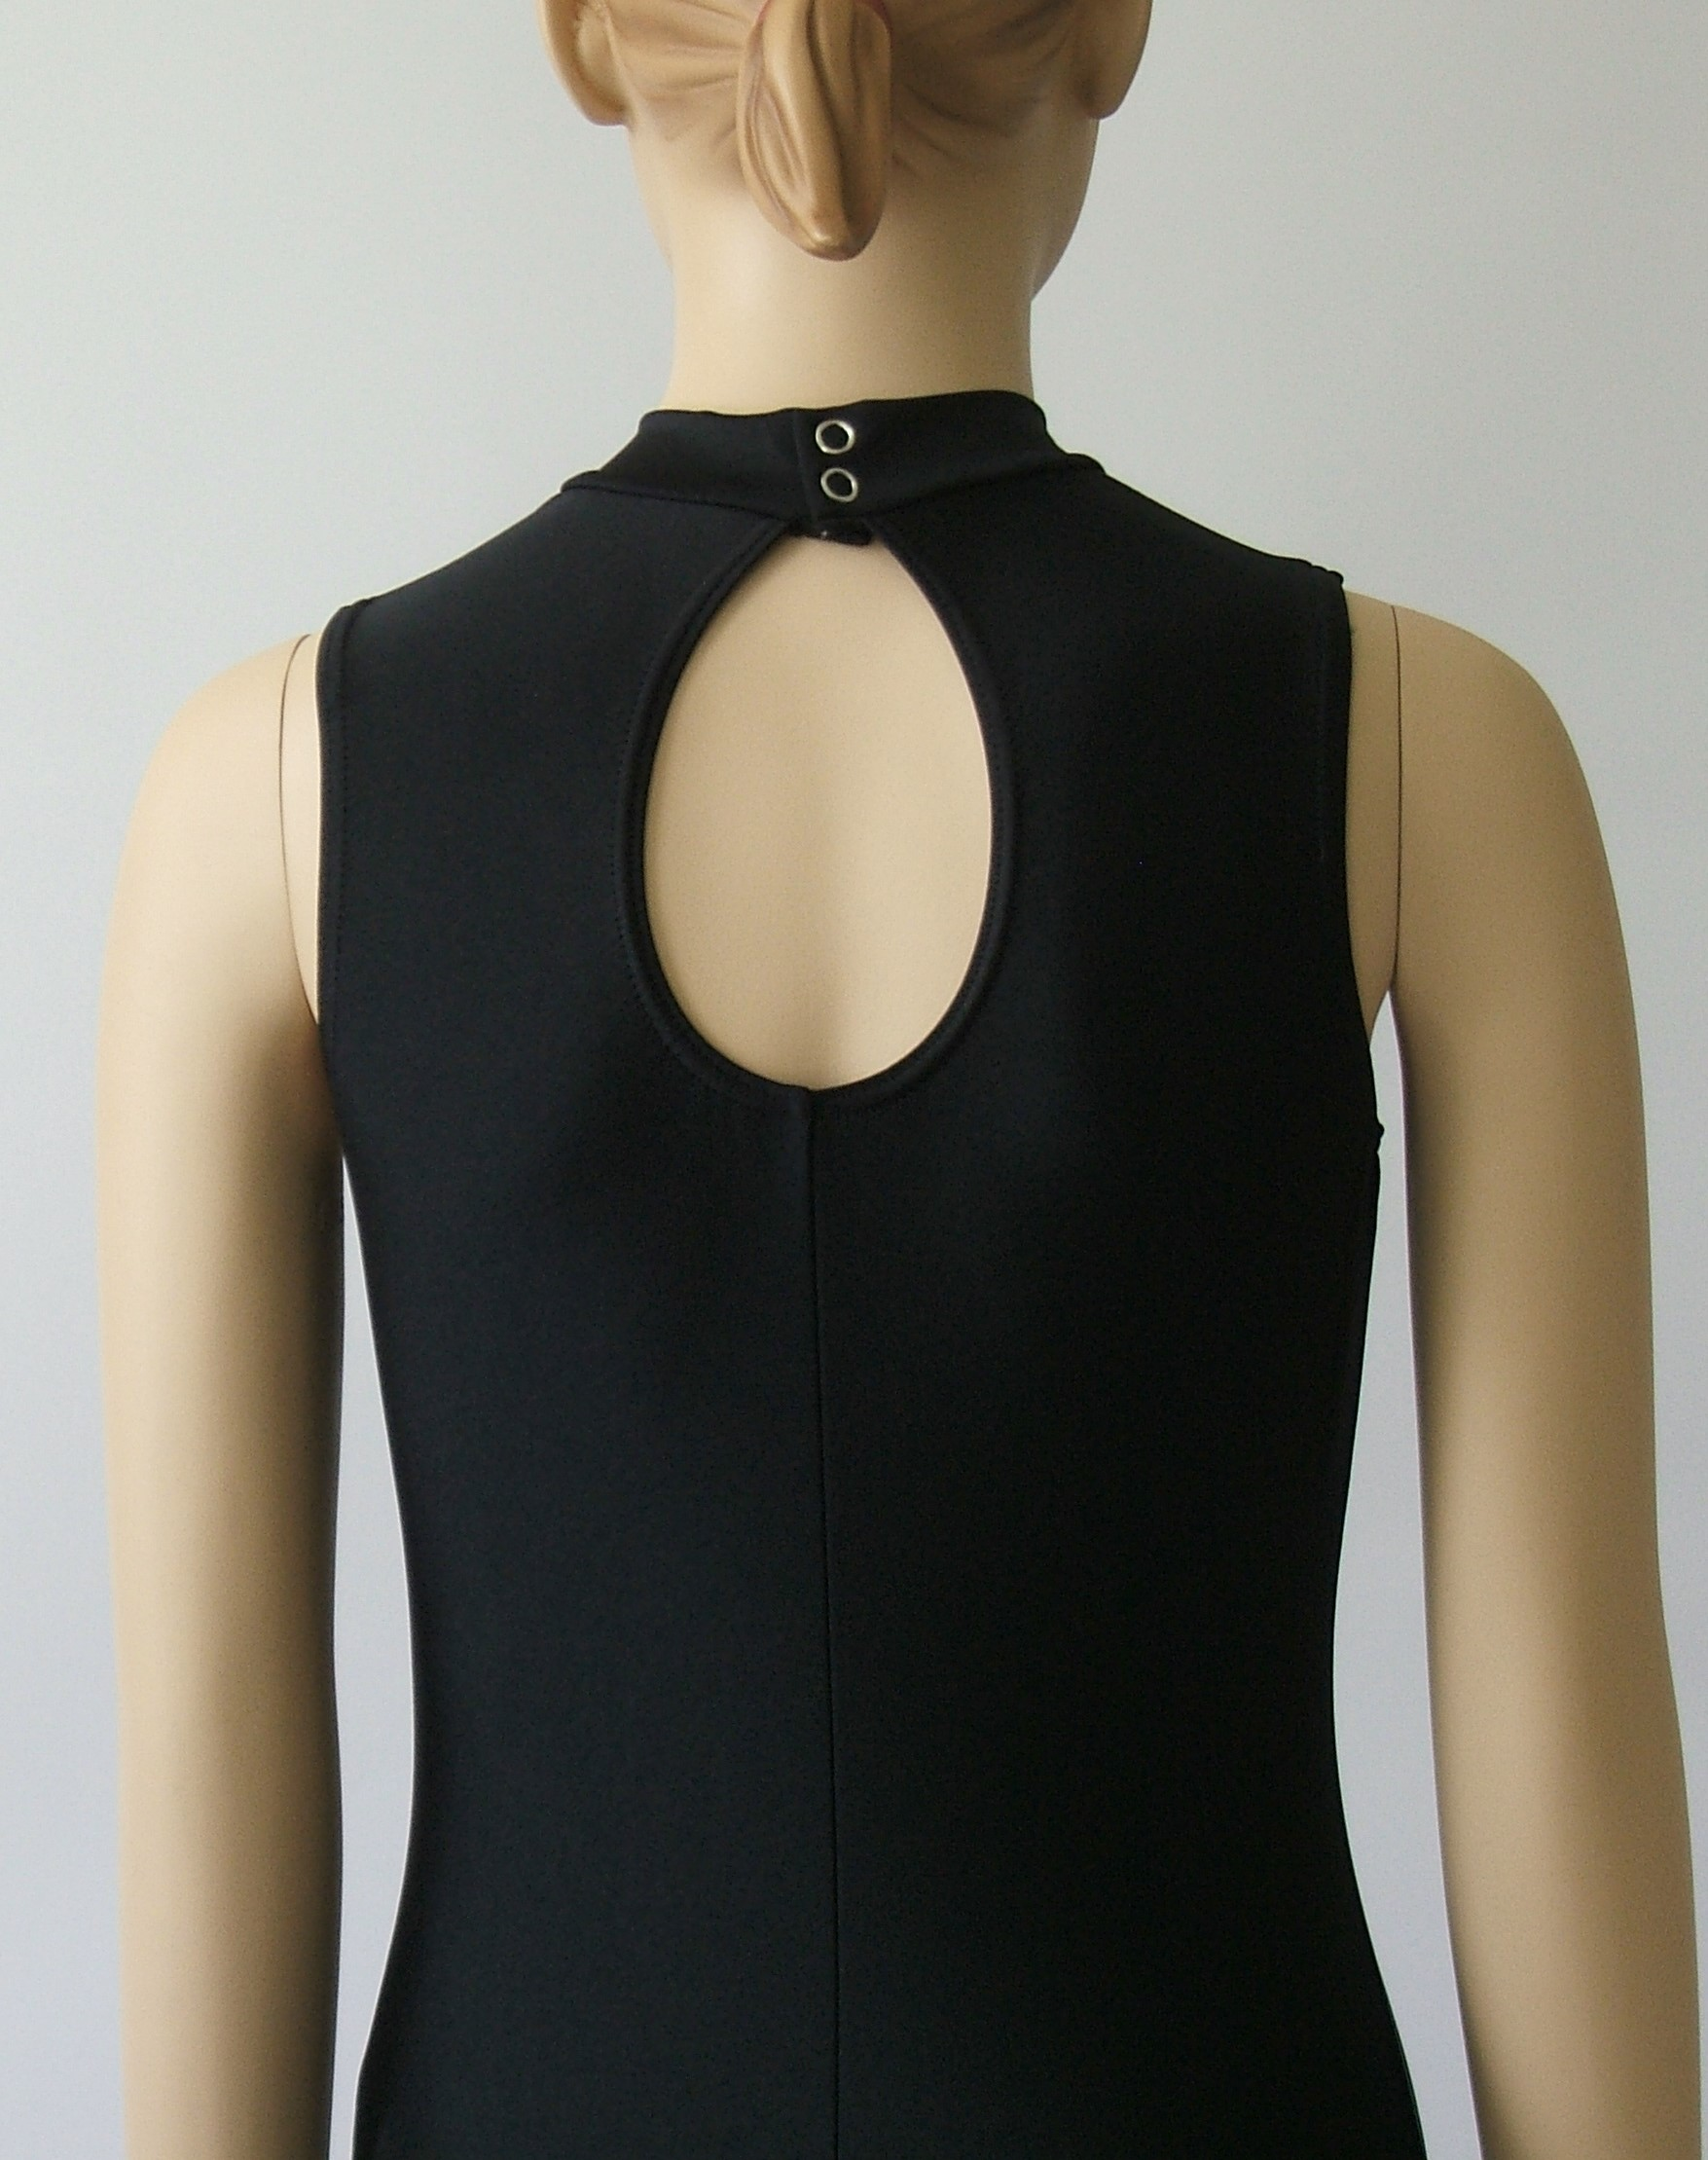 Leotard - Back view Black Polo Neck